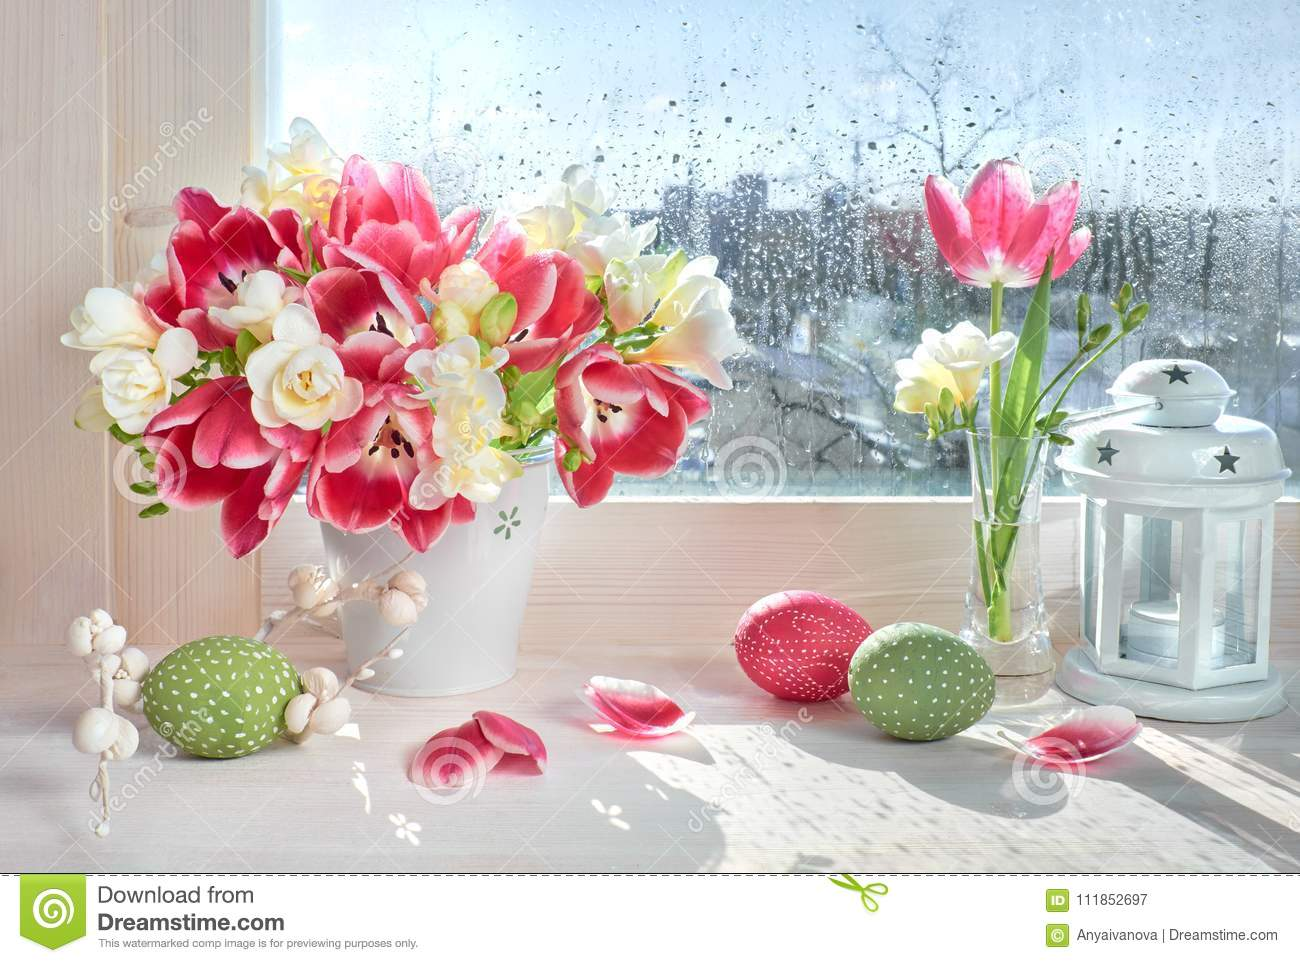 Pink Tulips And White Freesia Flowers With Easter Decorations On